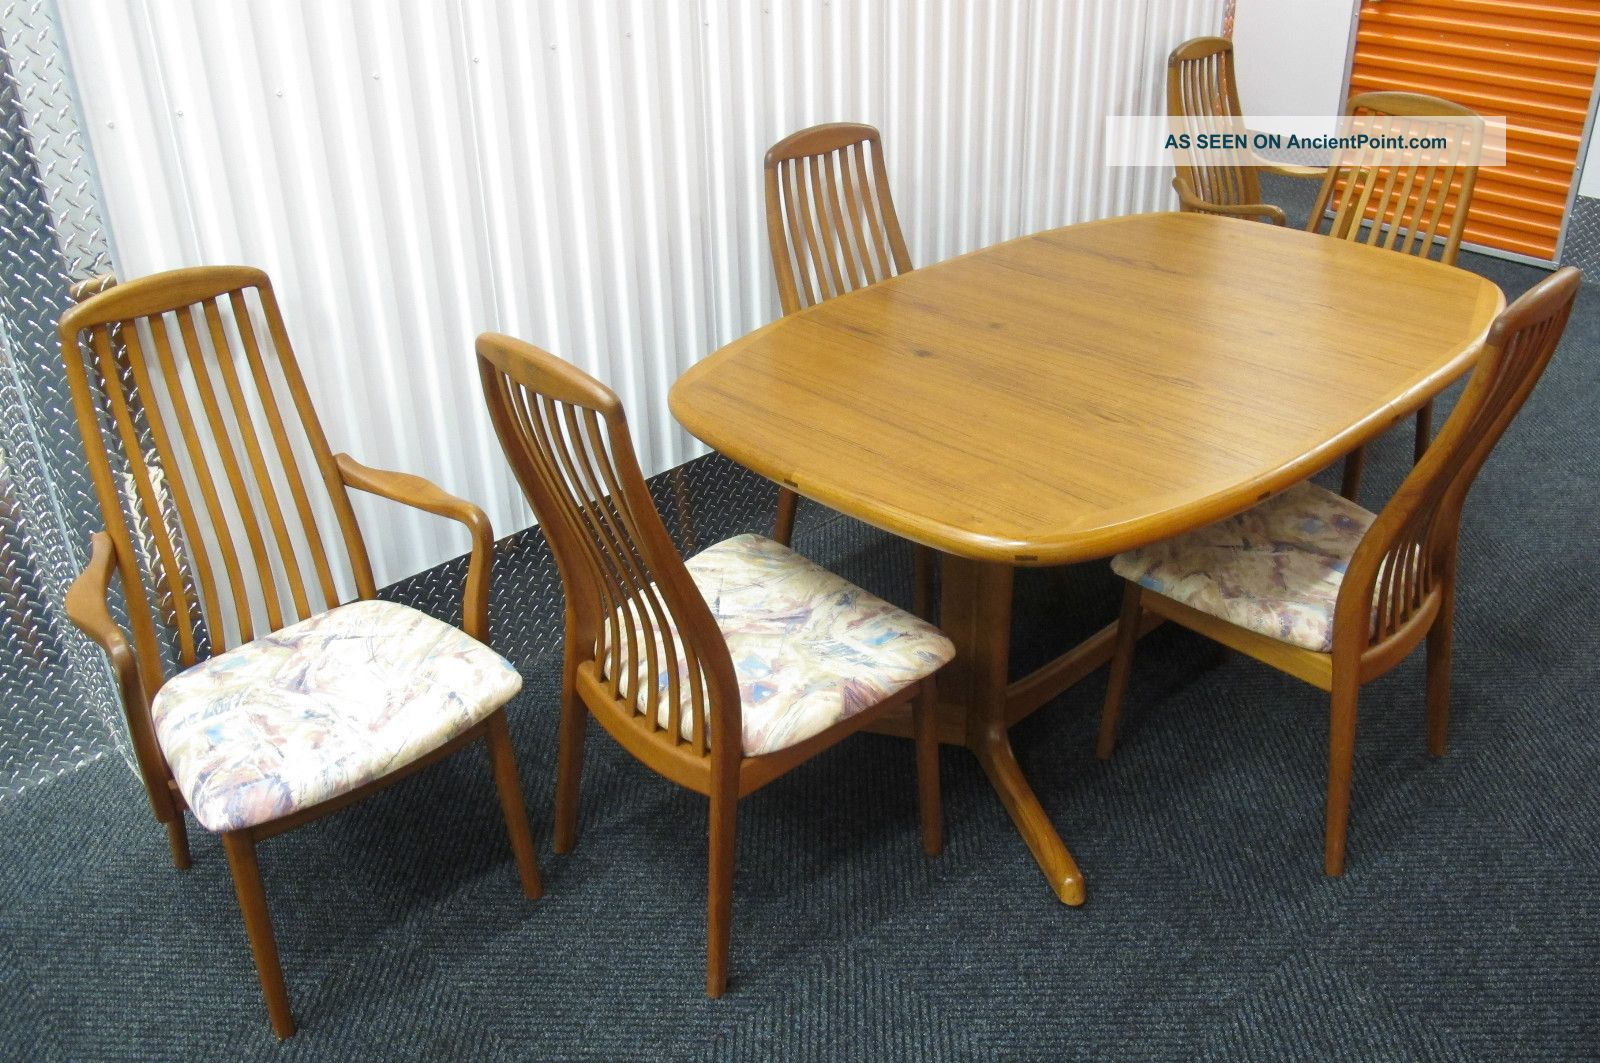 Amazing Mid Century Danish Modern Teak Dining Chairs 1600 x 1063 · 334 kB · jpeg